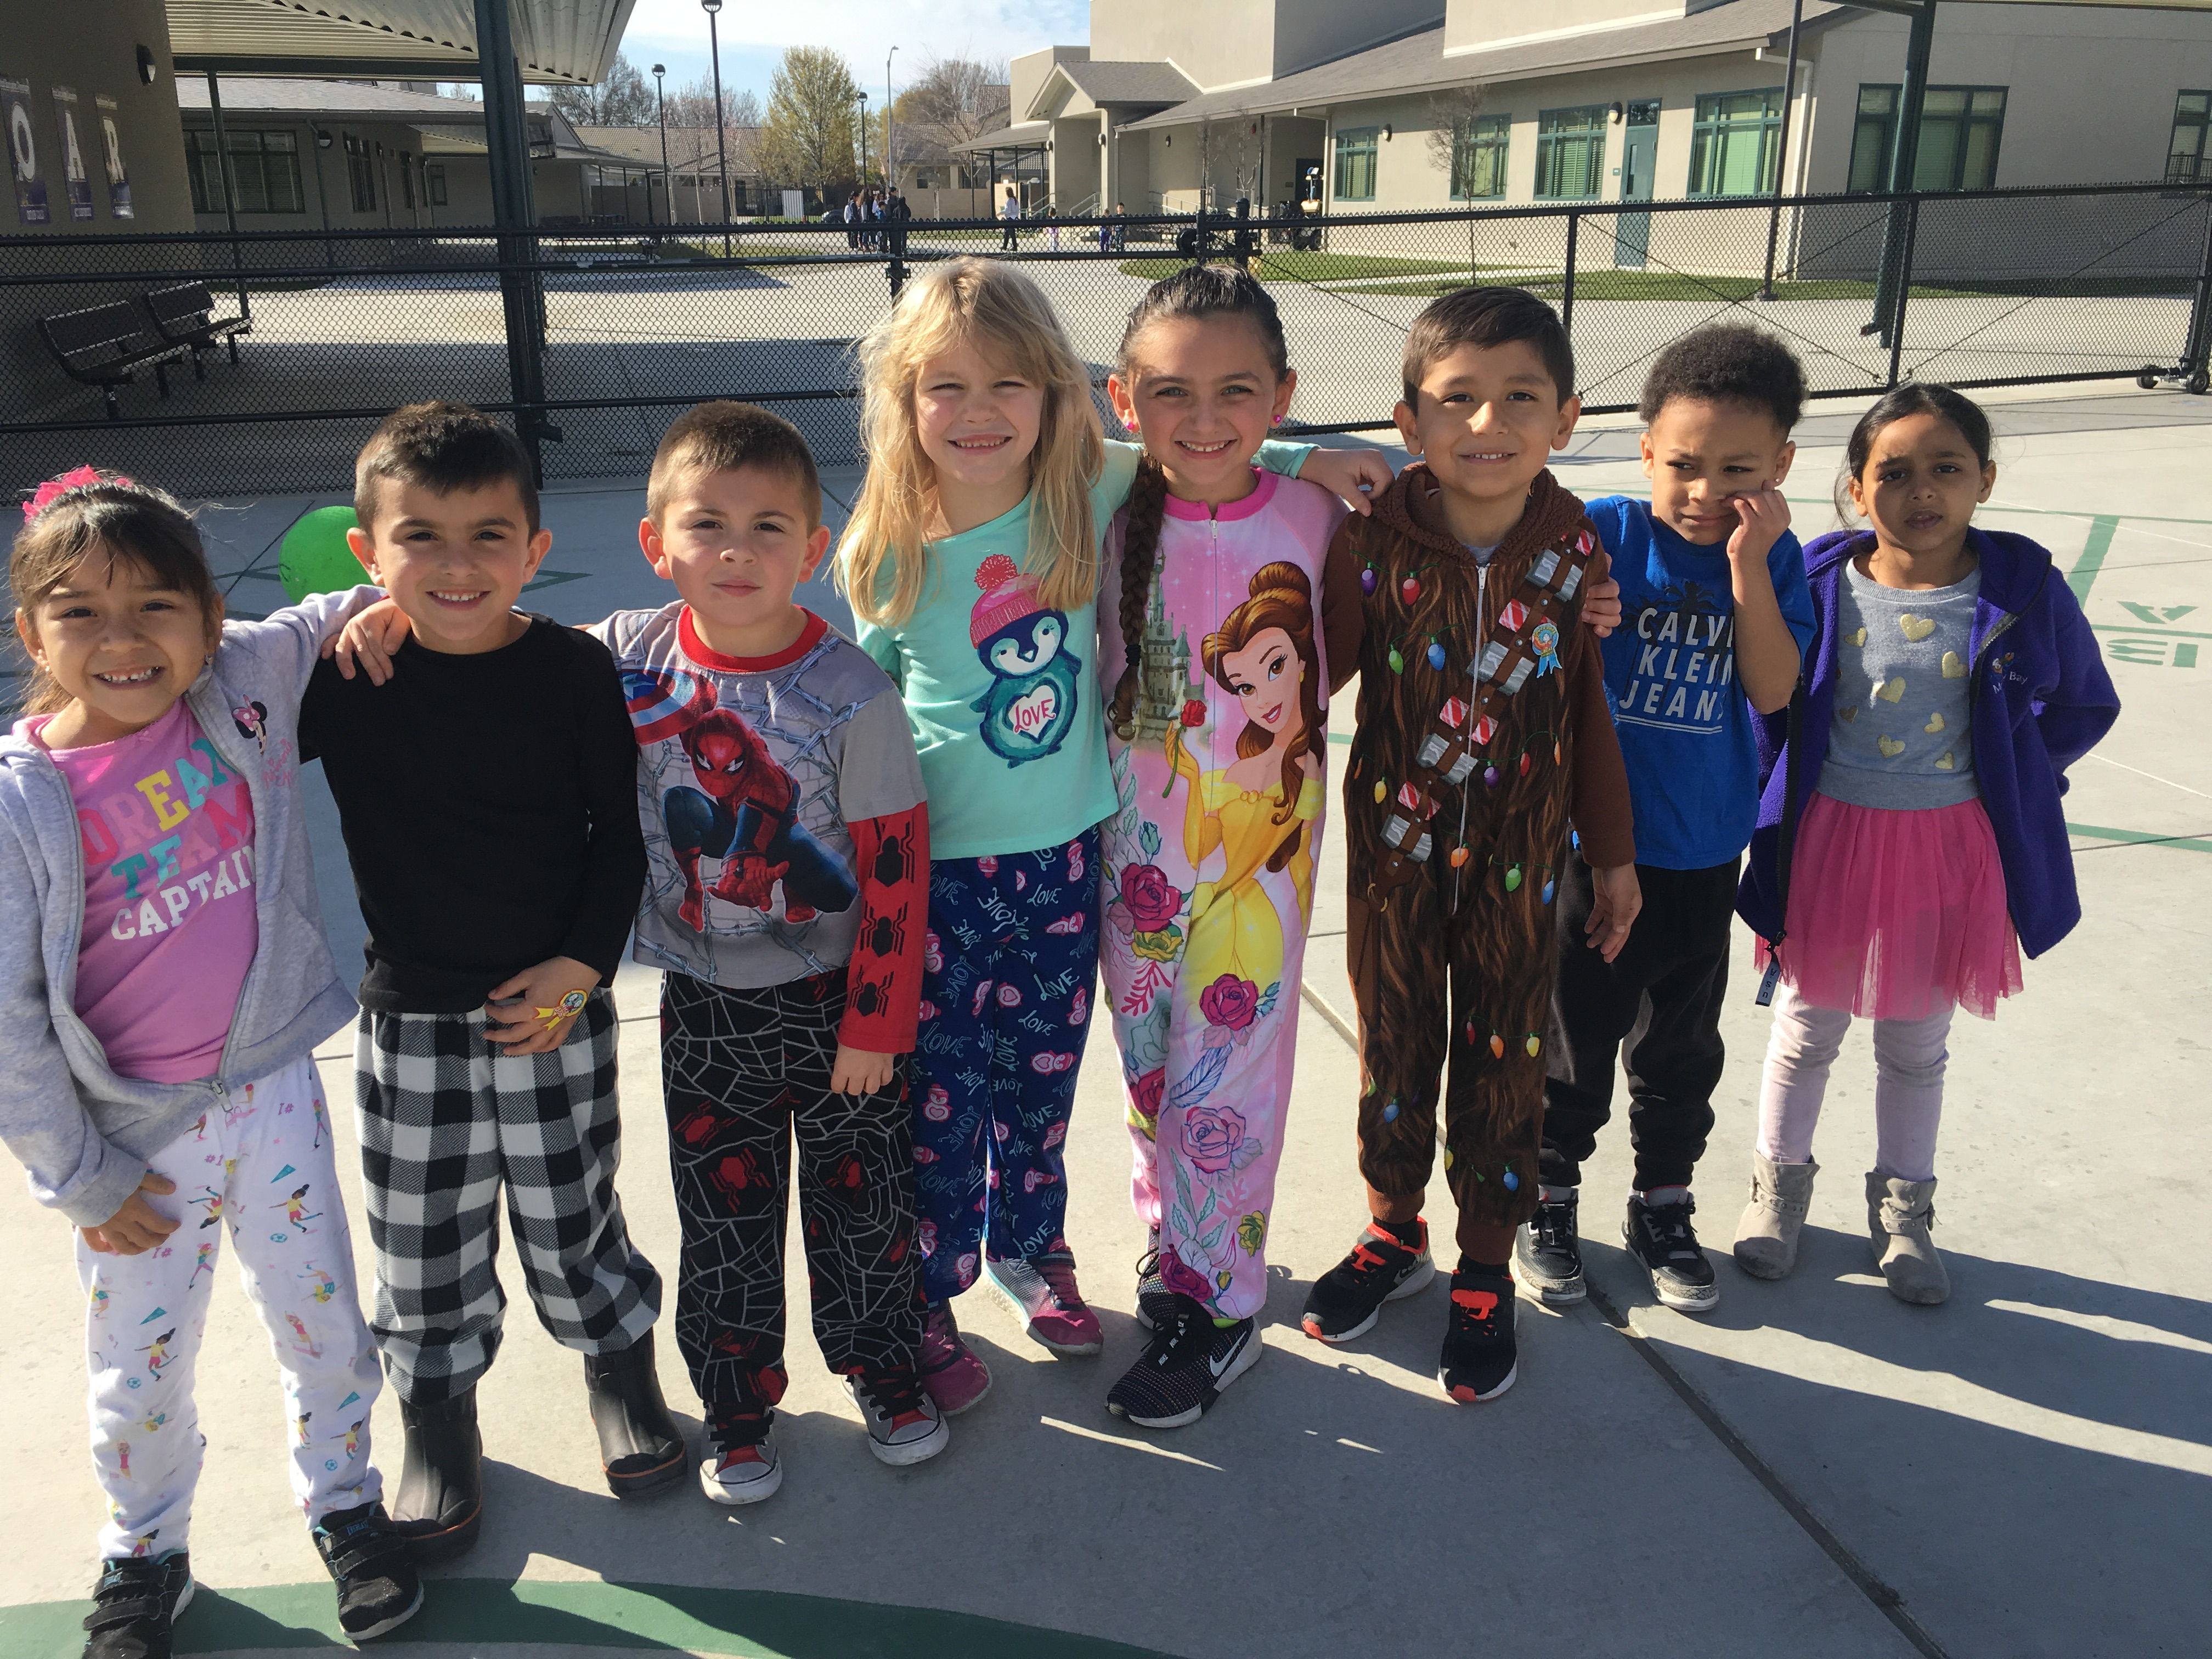 The students coming to the school in their pijamas